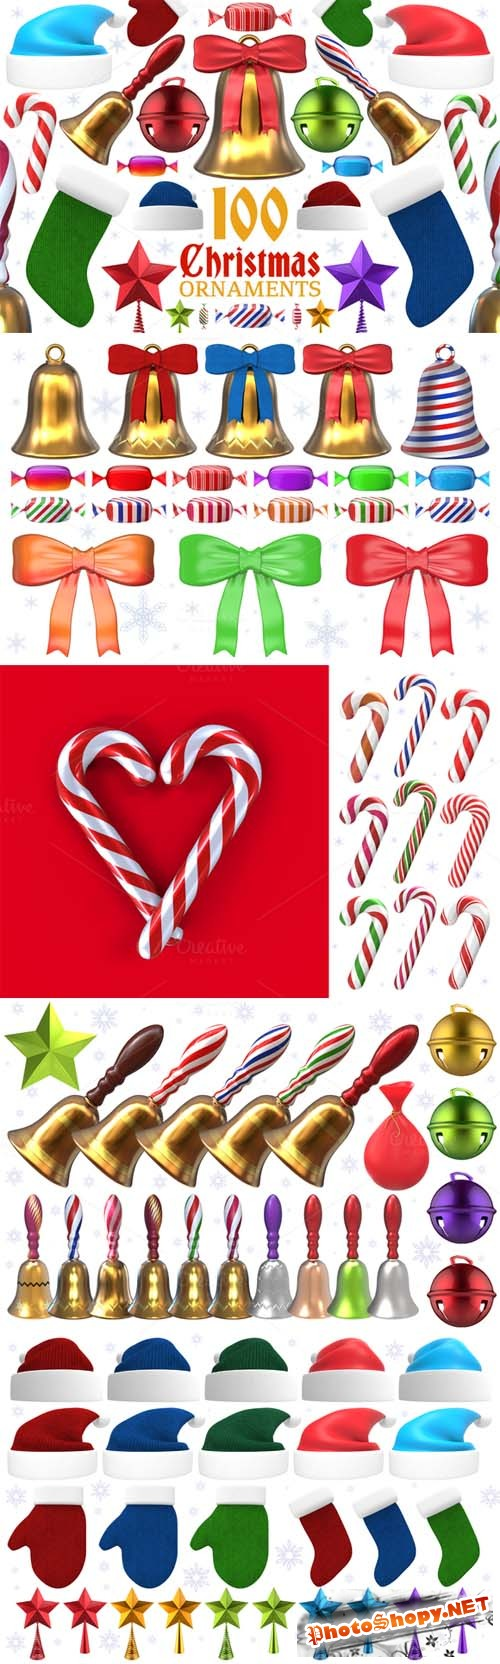 PNG Set - Christmas Ornaments and Items - 3D